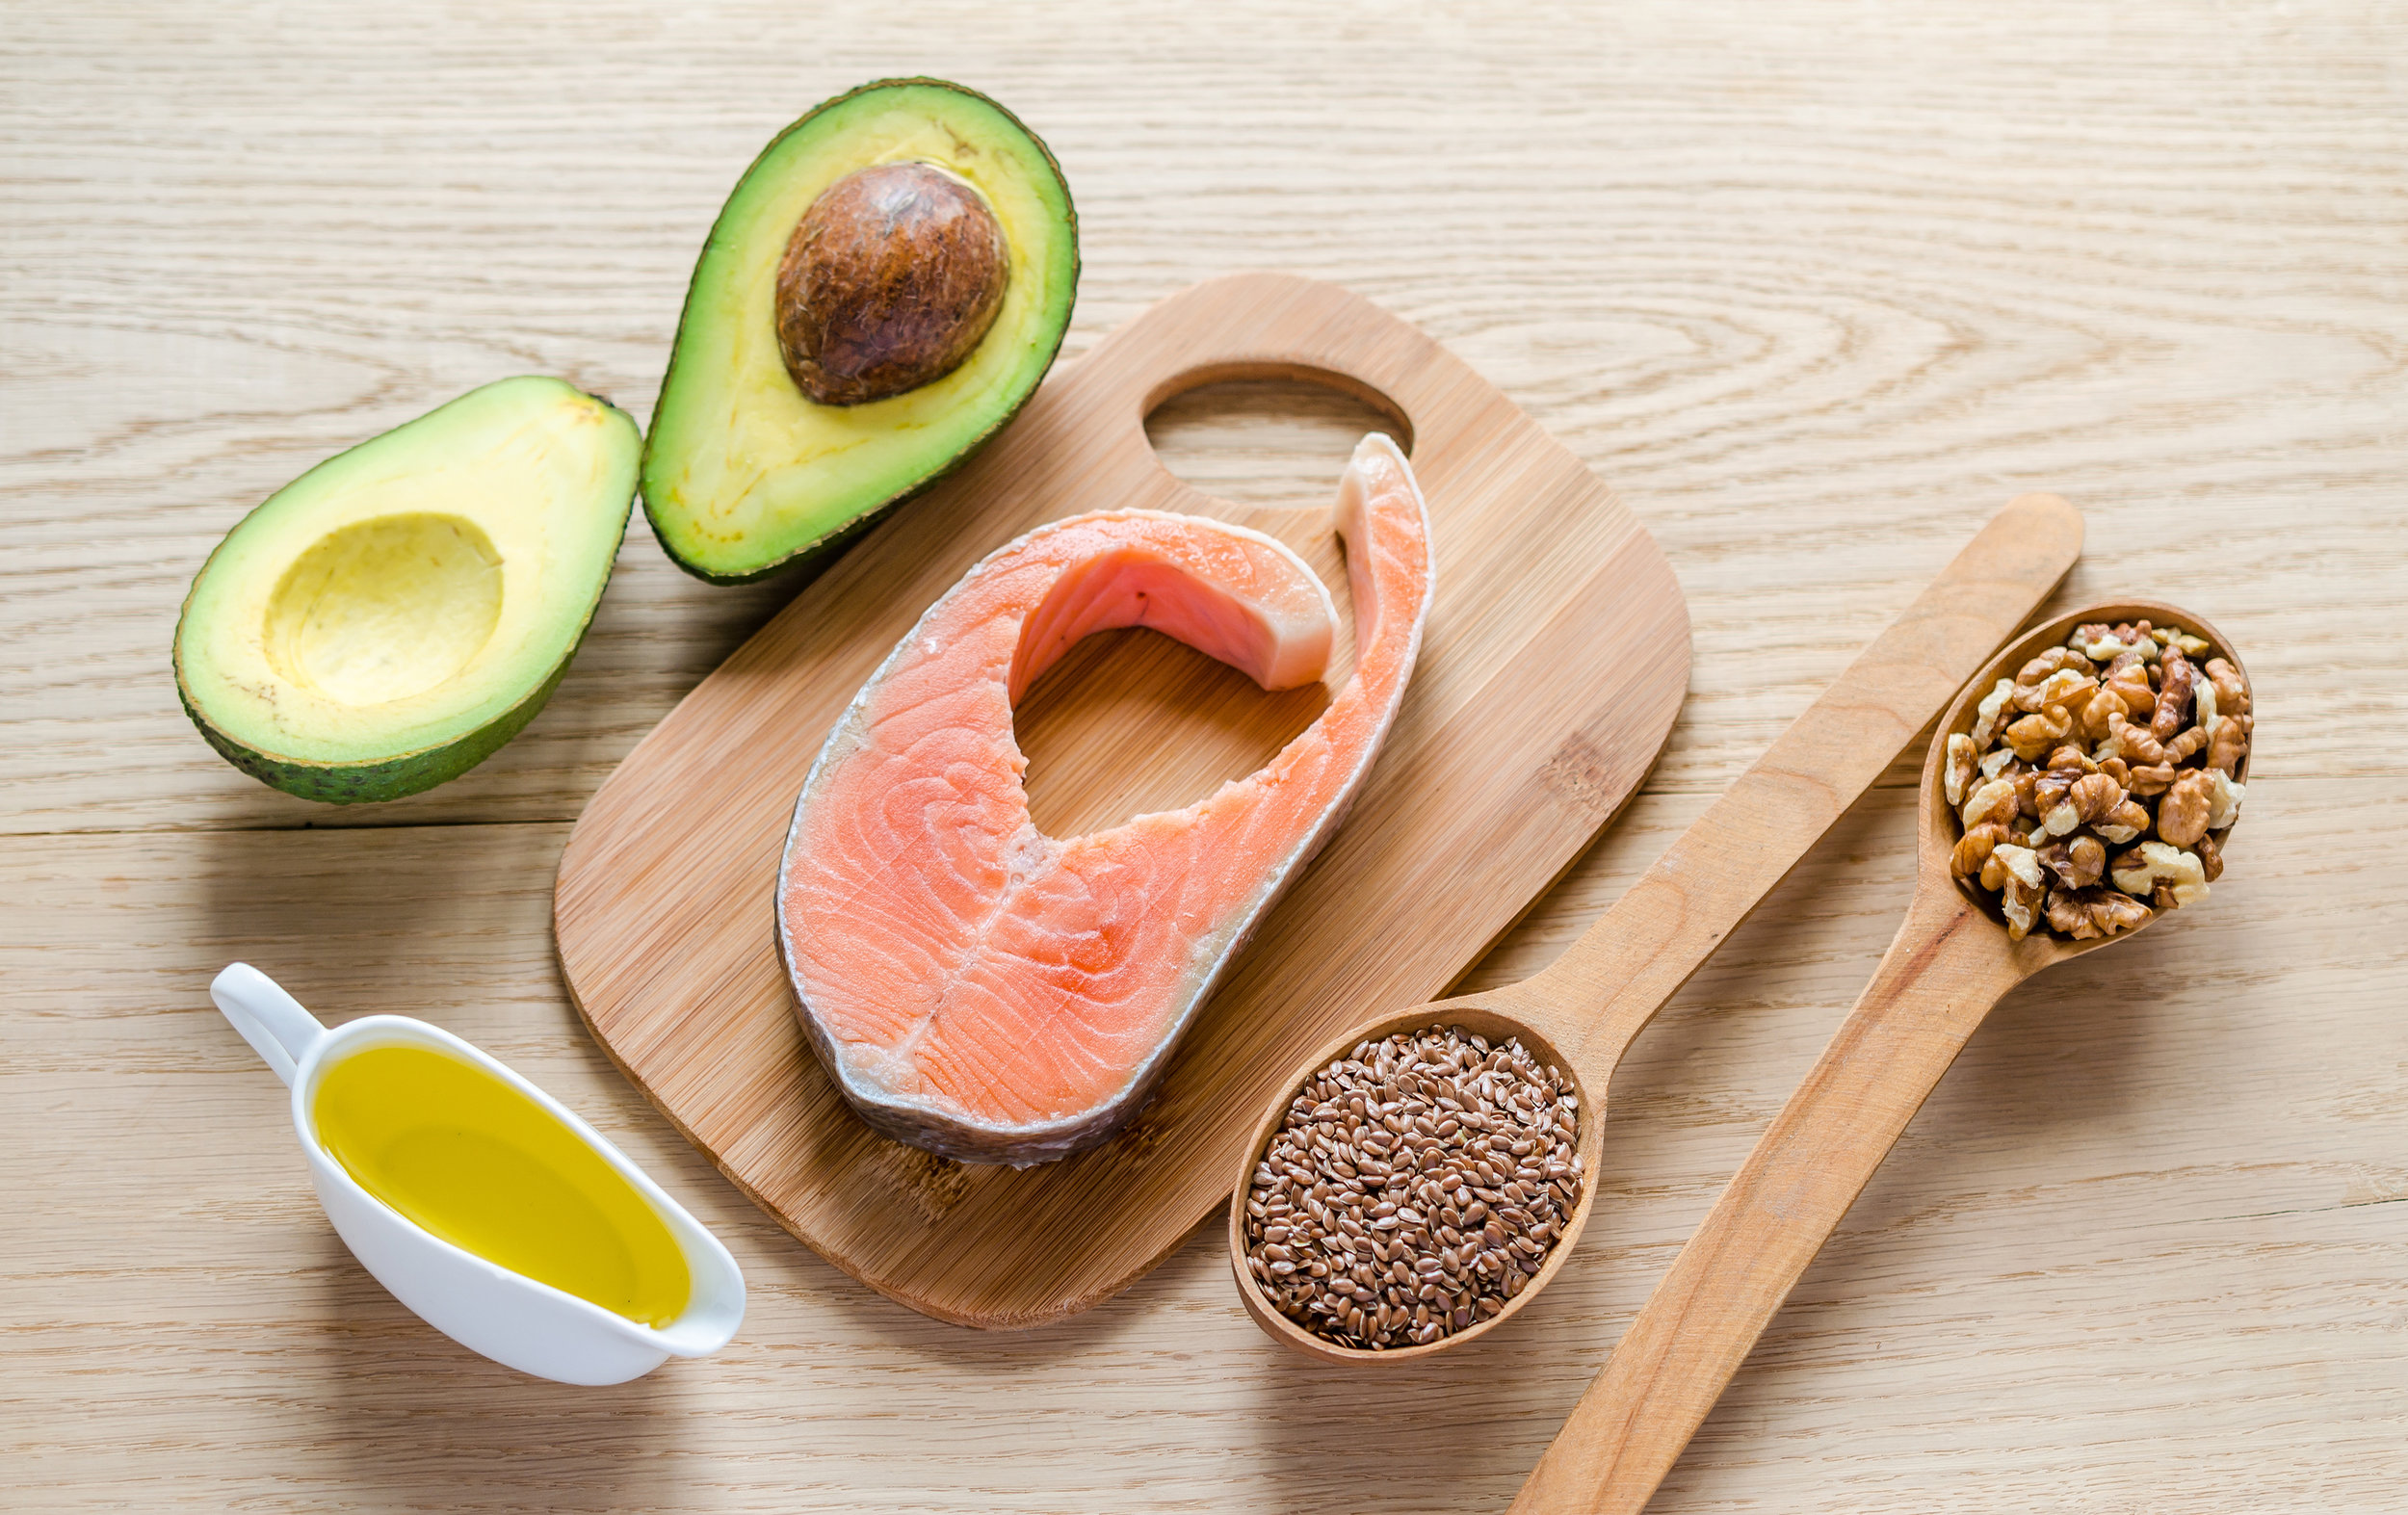 bigstock-Food-With-Unsaturated-Fats-52226848.jpg